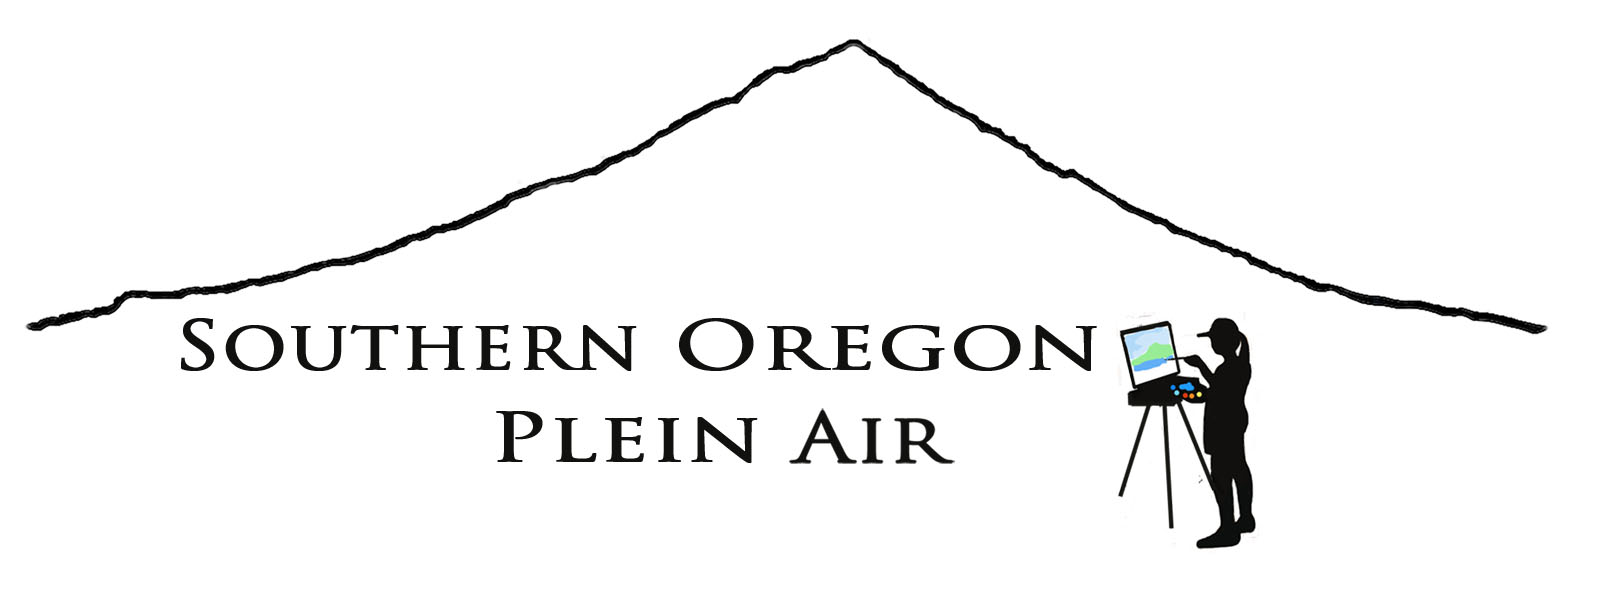 Southern Oregon Plein Air 2018 logo